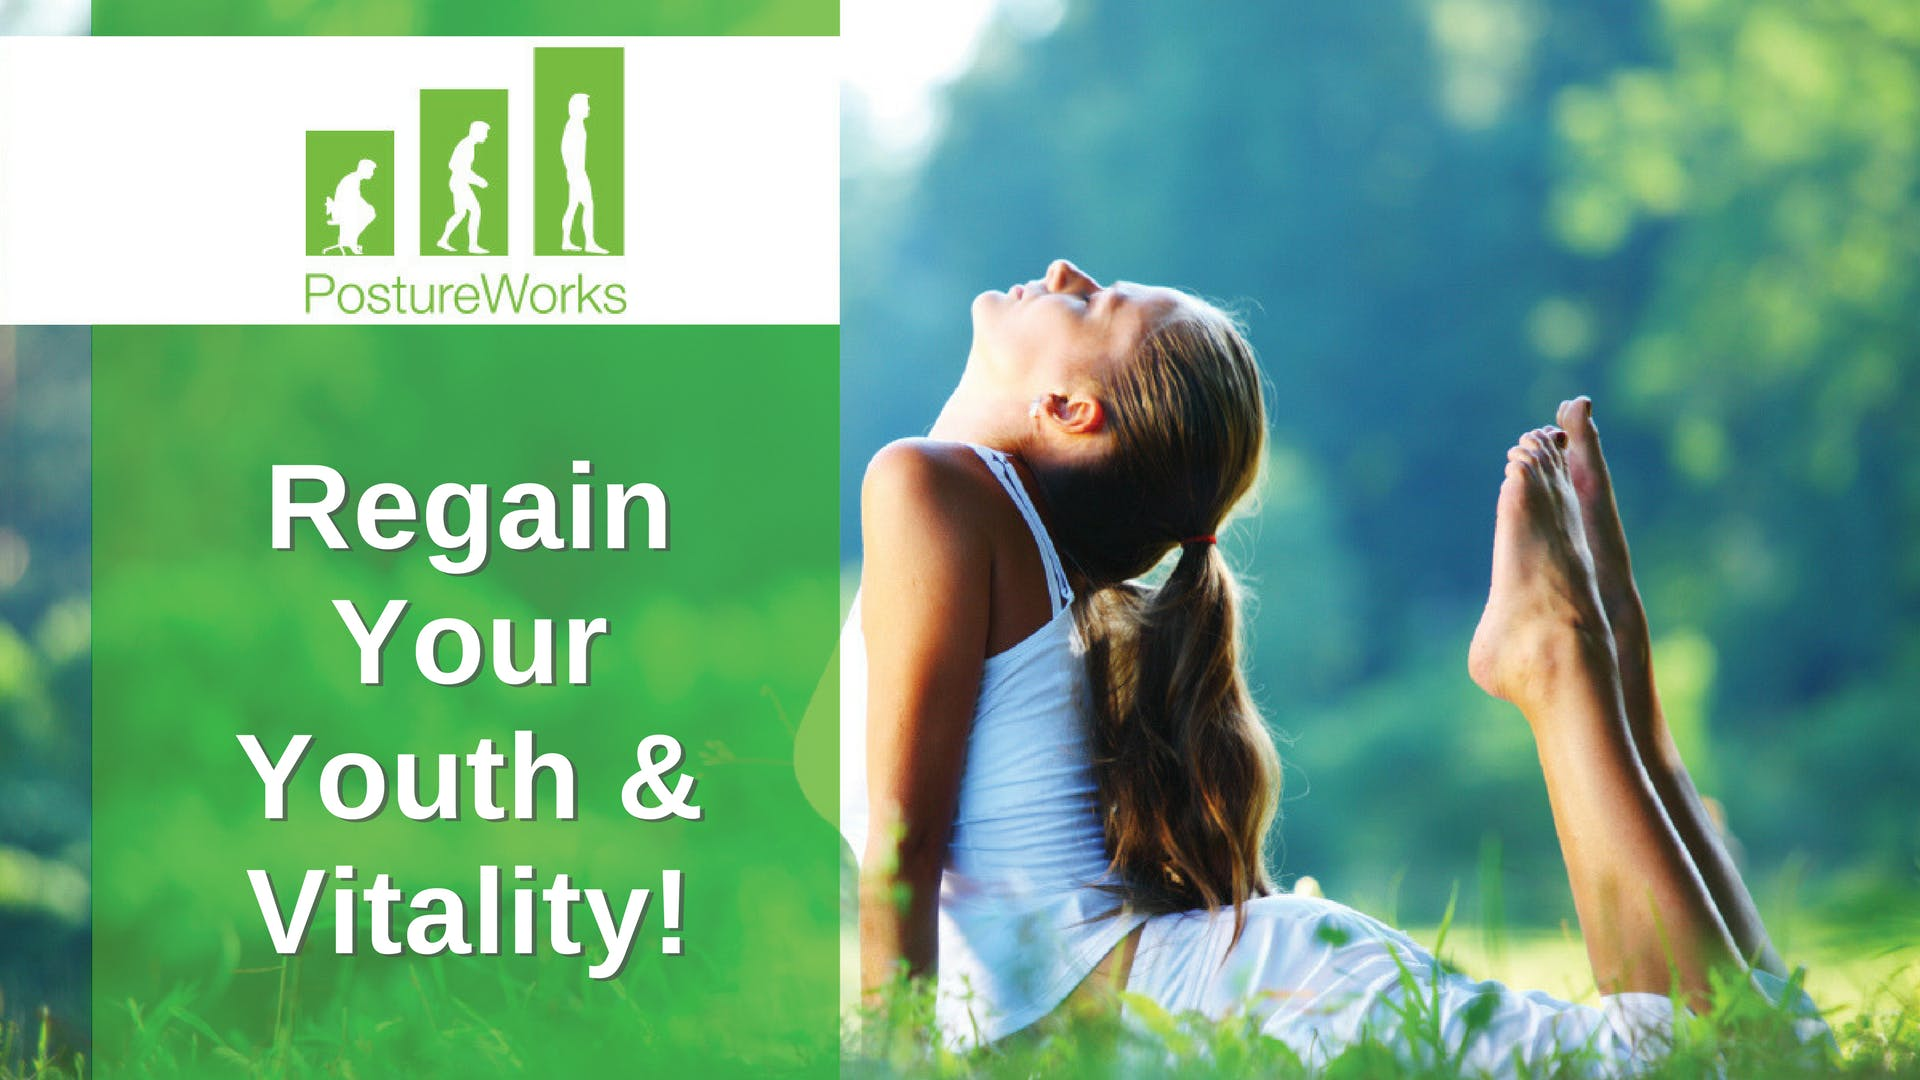 Regain Your Youth & Vitality!